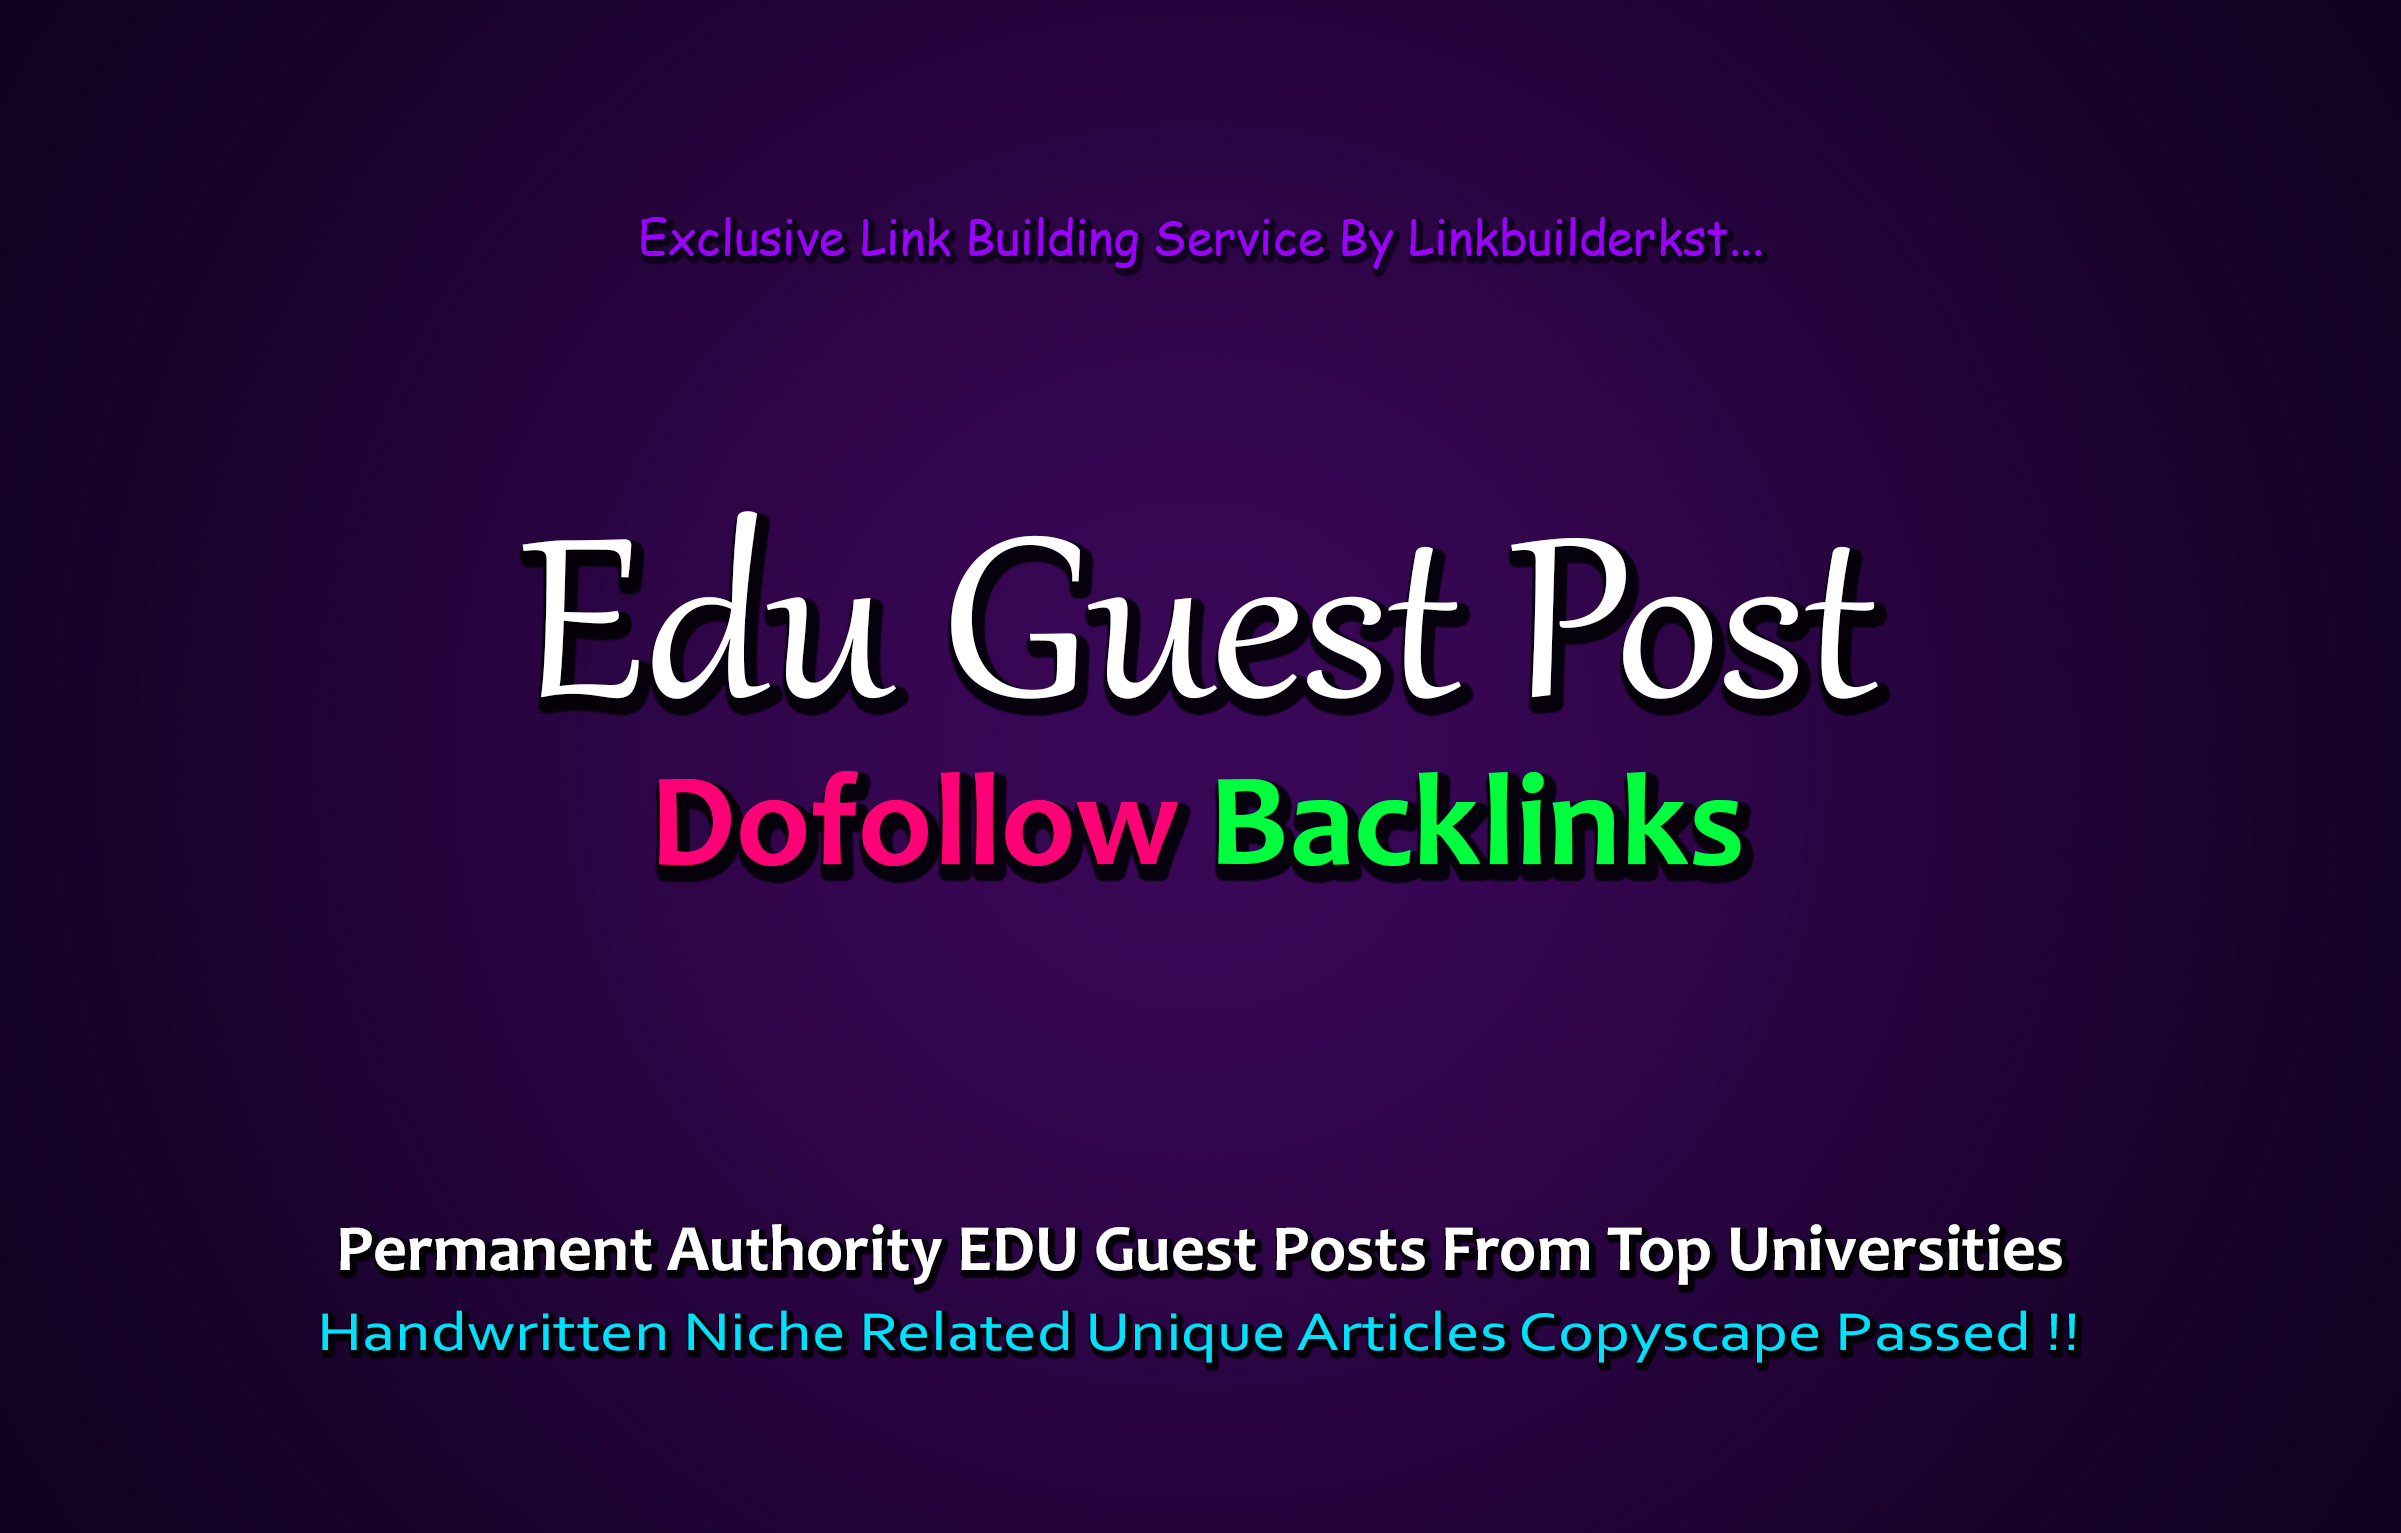 Write And Publish 3X EDU Guest Posts From Top 3 Universities